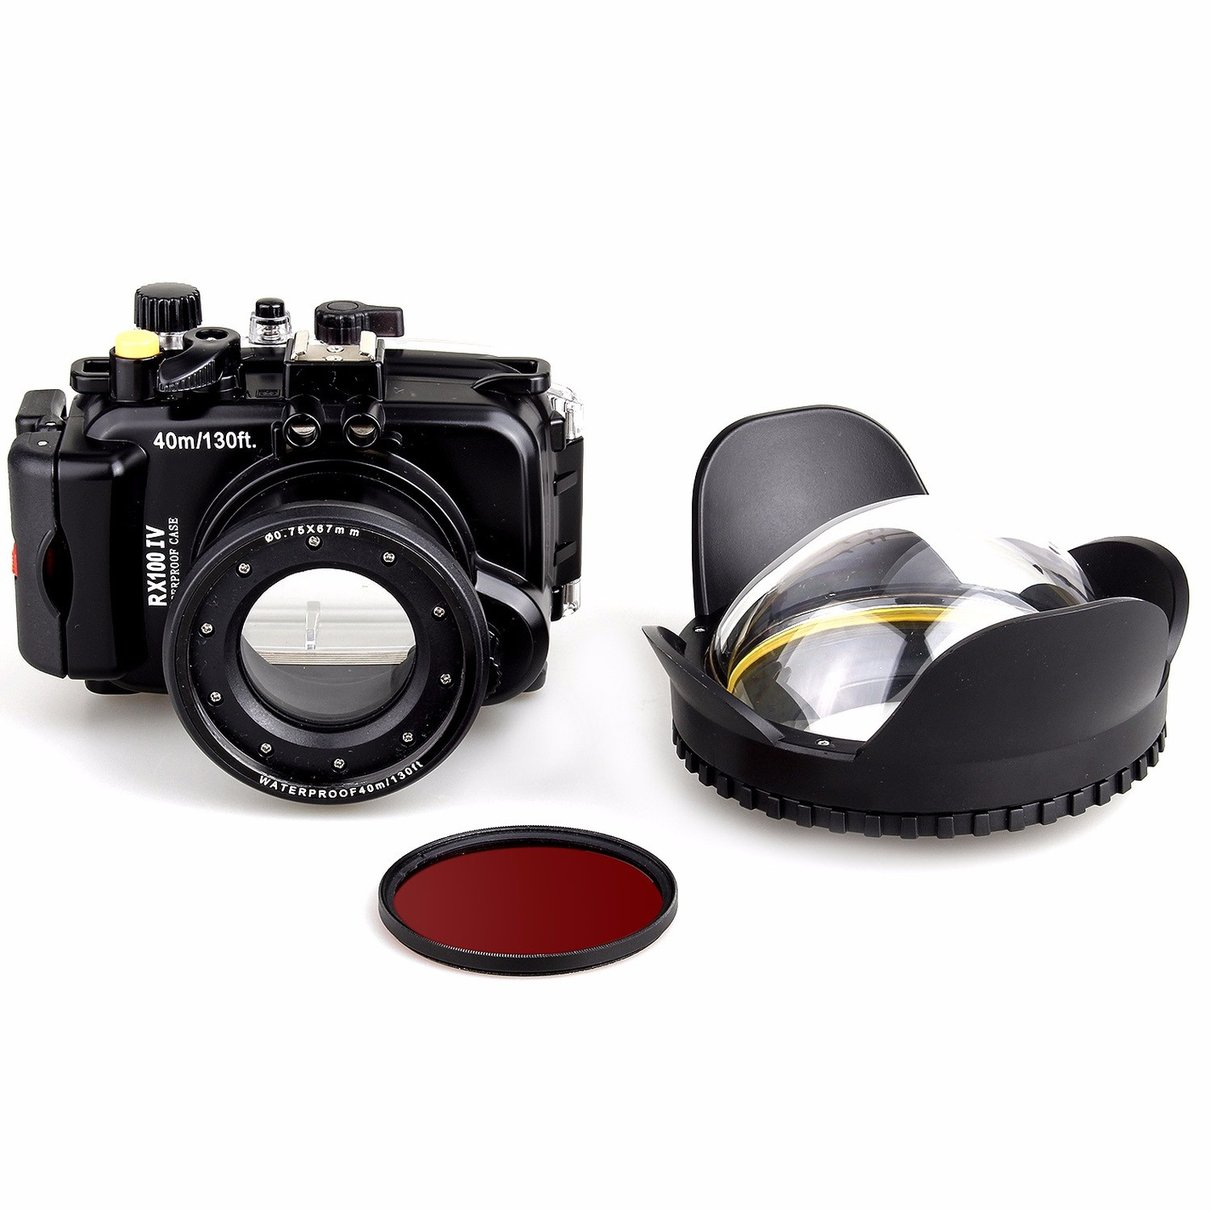 40M Underwater Waterproof Camera Housing Diving Case for Sony DSC RX100 IV RX100 M4 + Red Filter 67mm + 67mm Fisheye Lens